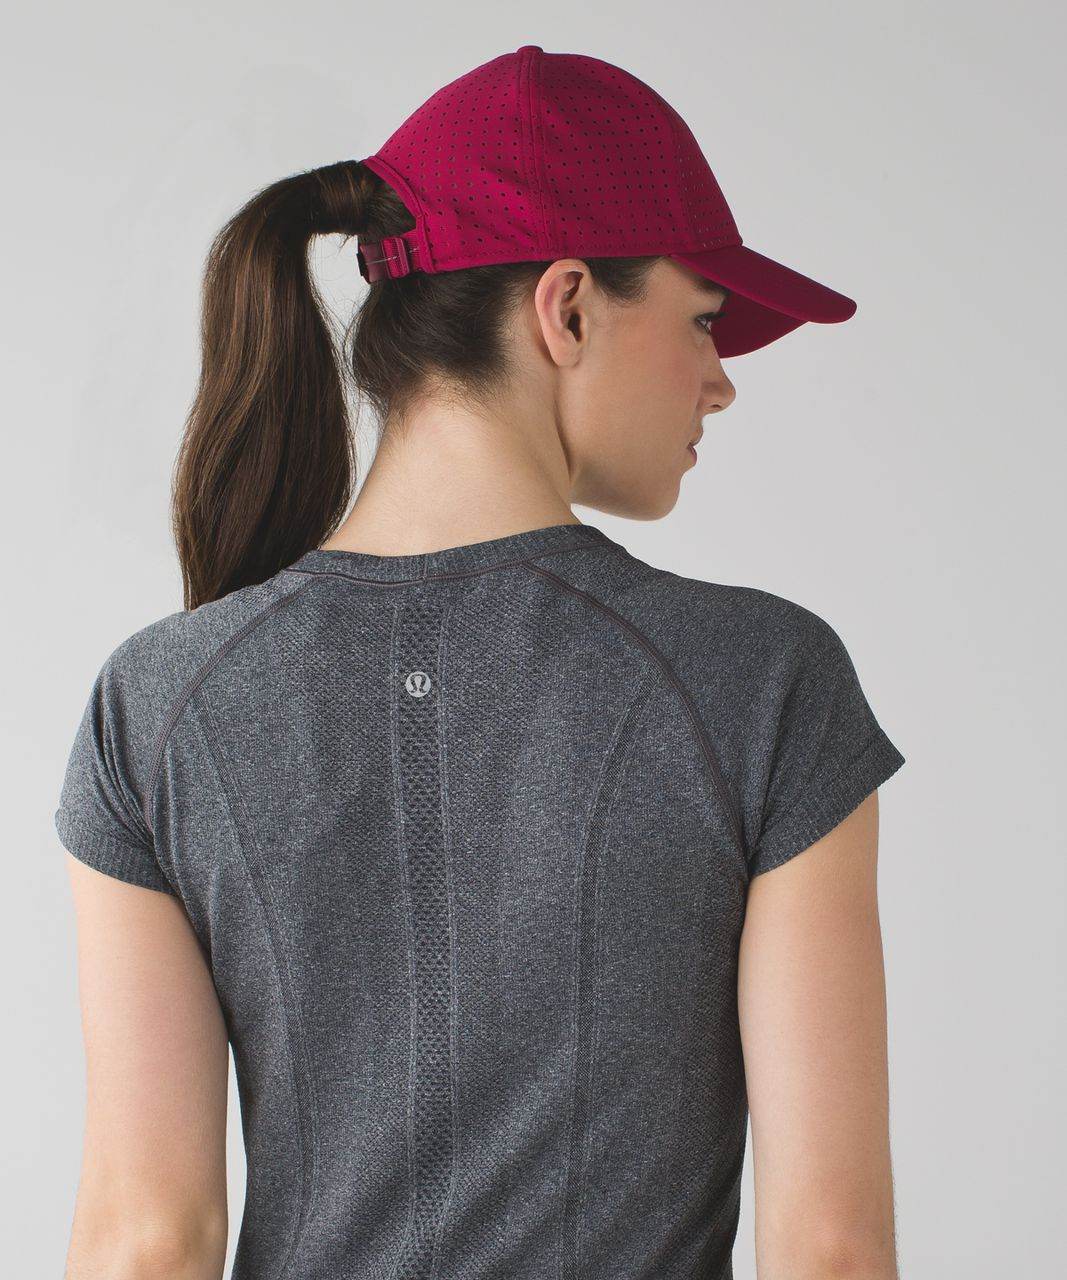 Lululemon Baller Hat (Perforated) - Berry Rumble / Berry Rumble